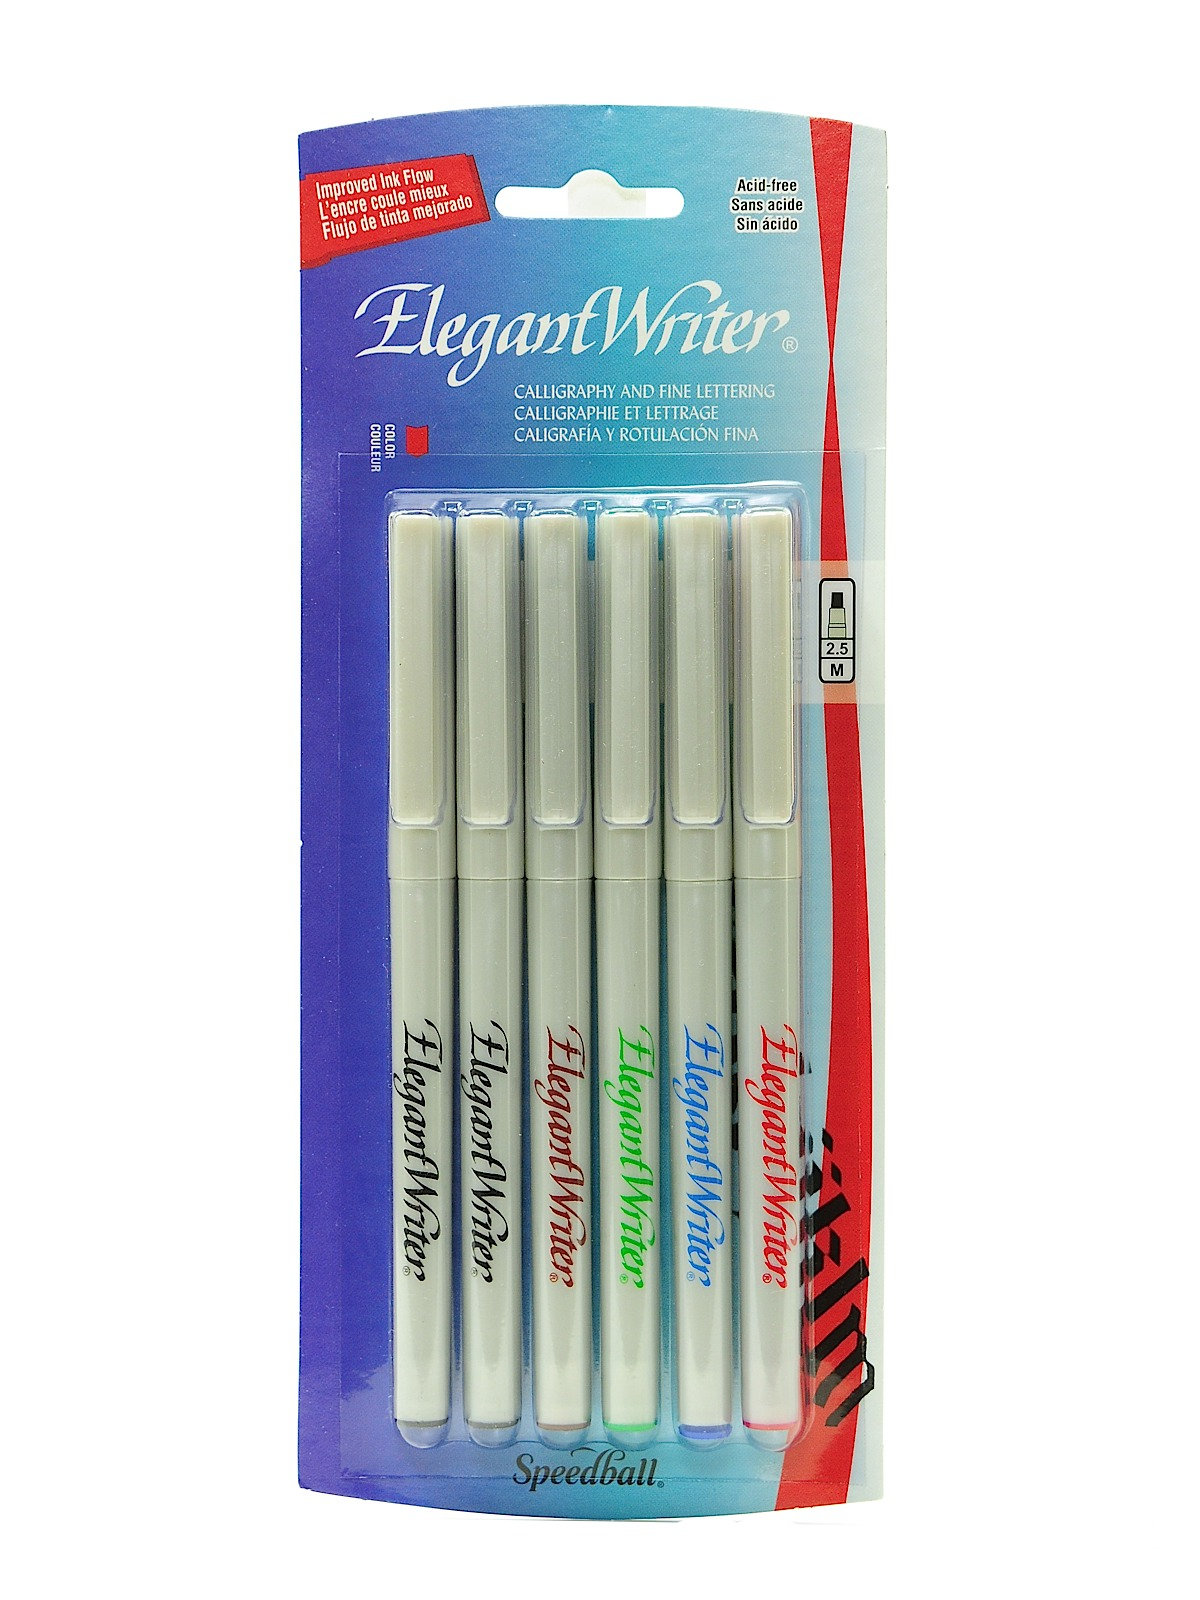 Elegant Writer Calligraphy Marker Sets